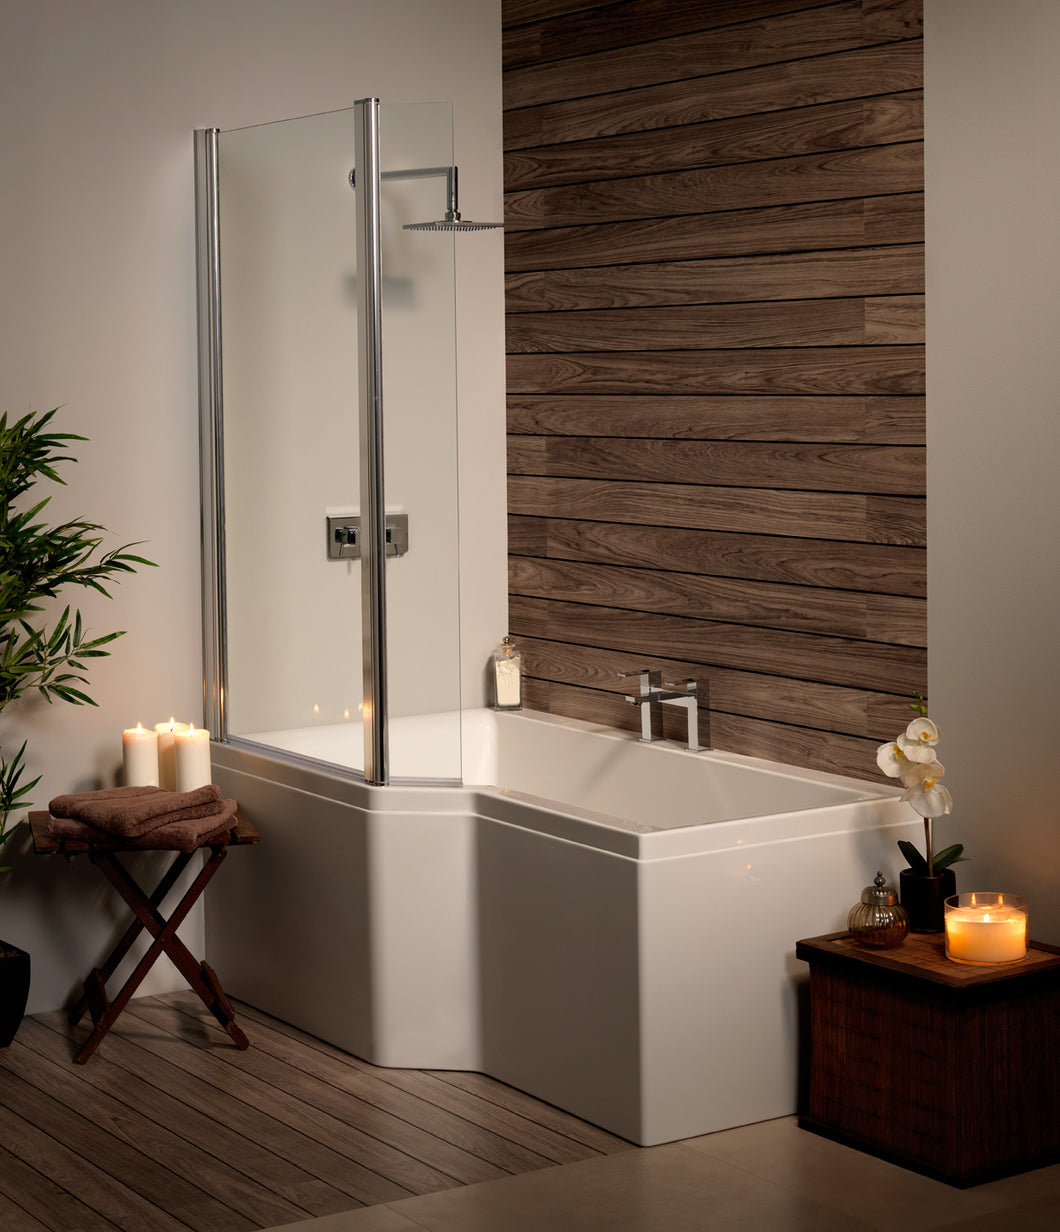 Carron Urban Edge Showerbath